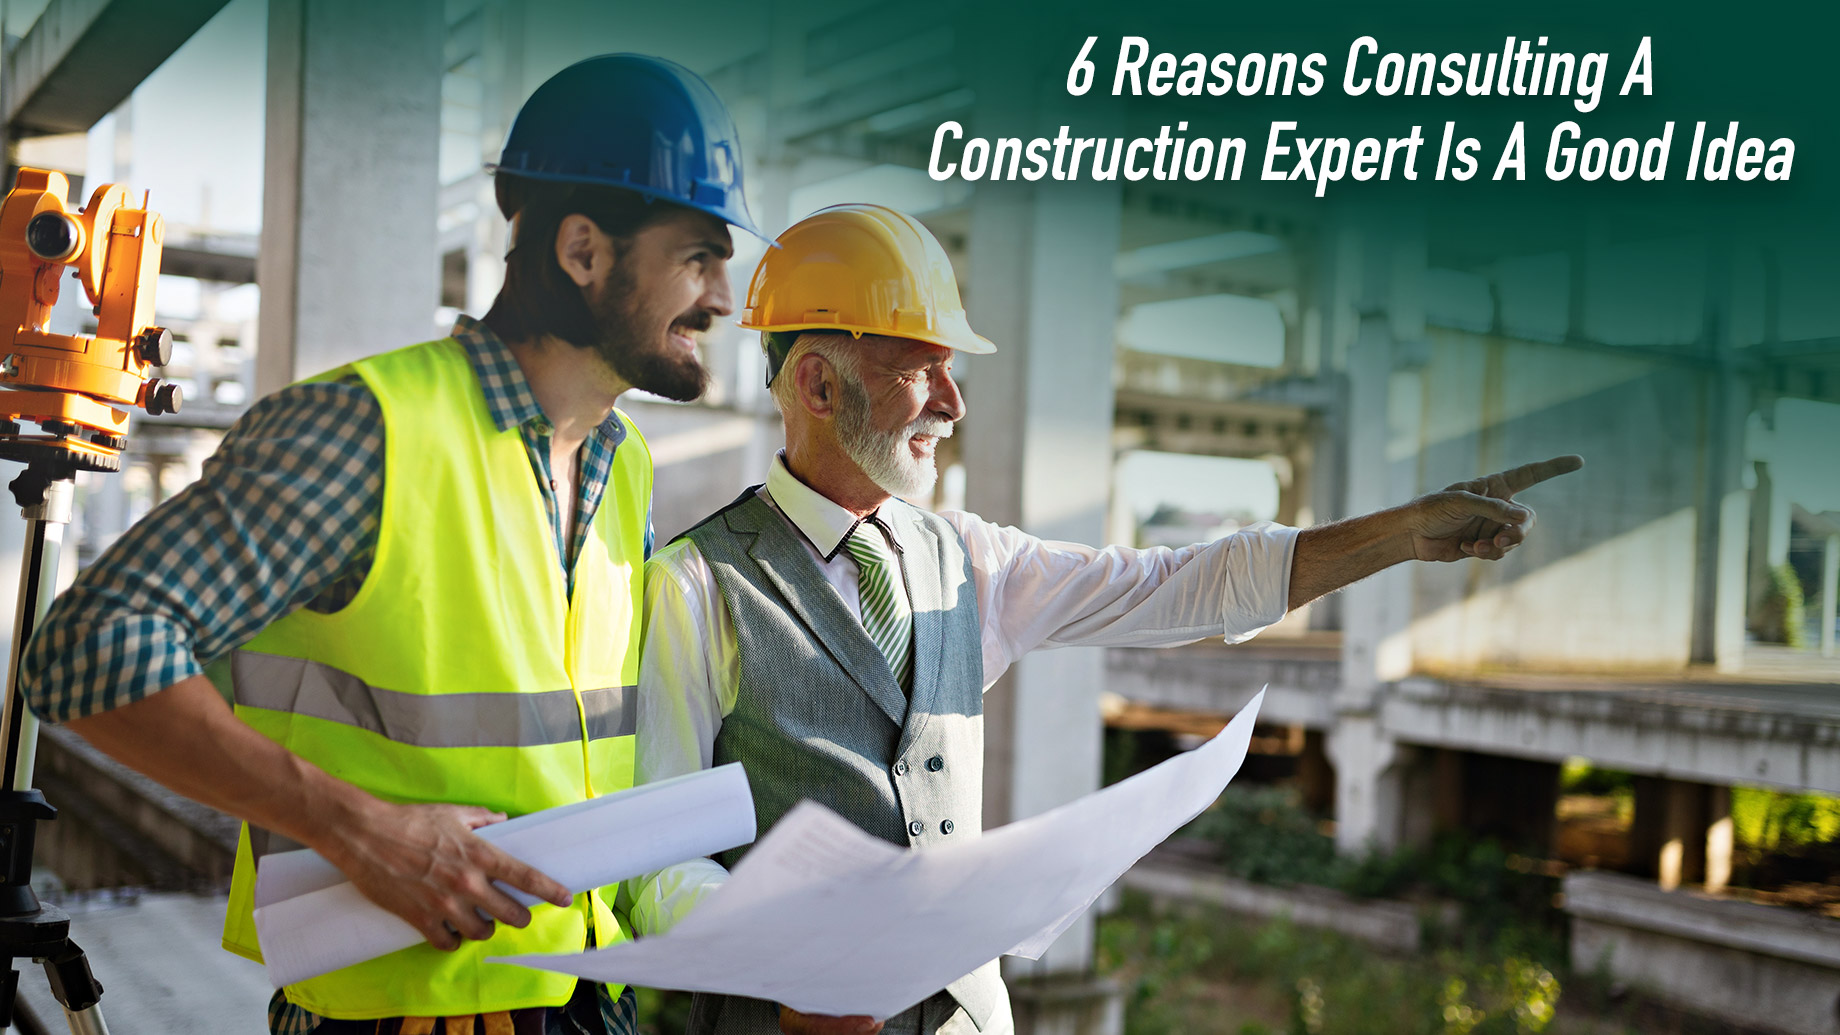 6 Reasons Consulting A Construction Expert Is A Good Idea